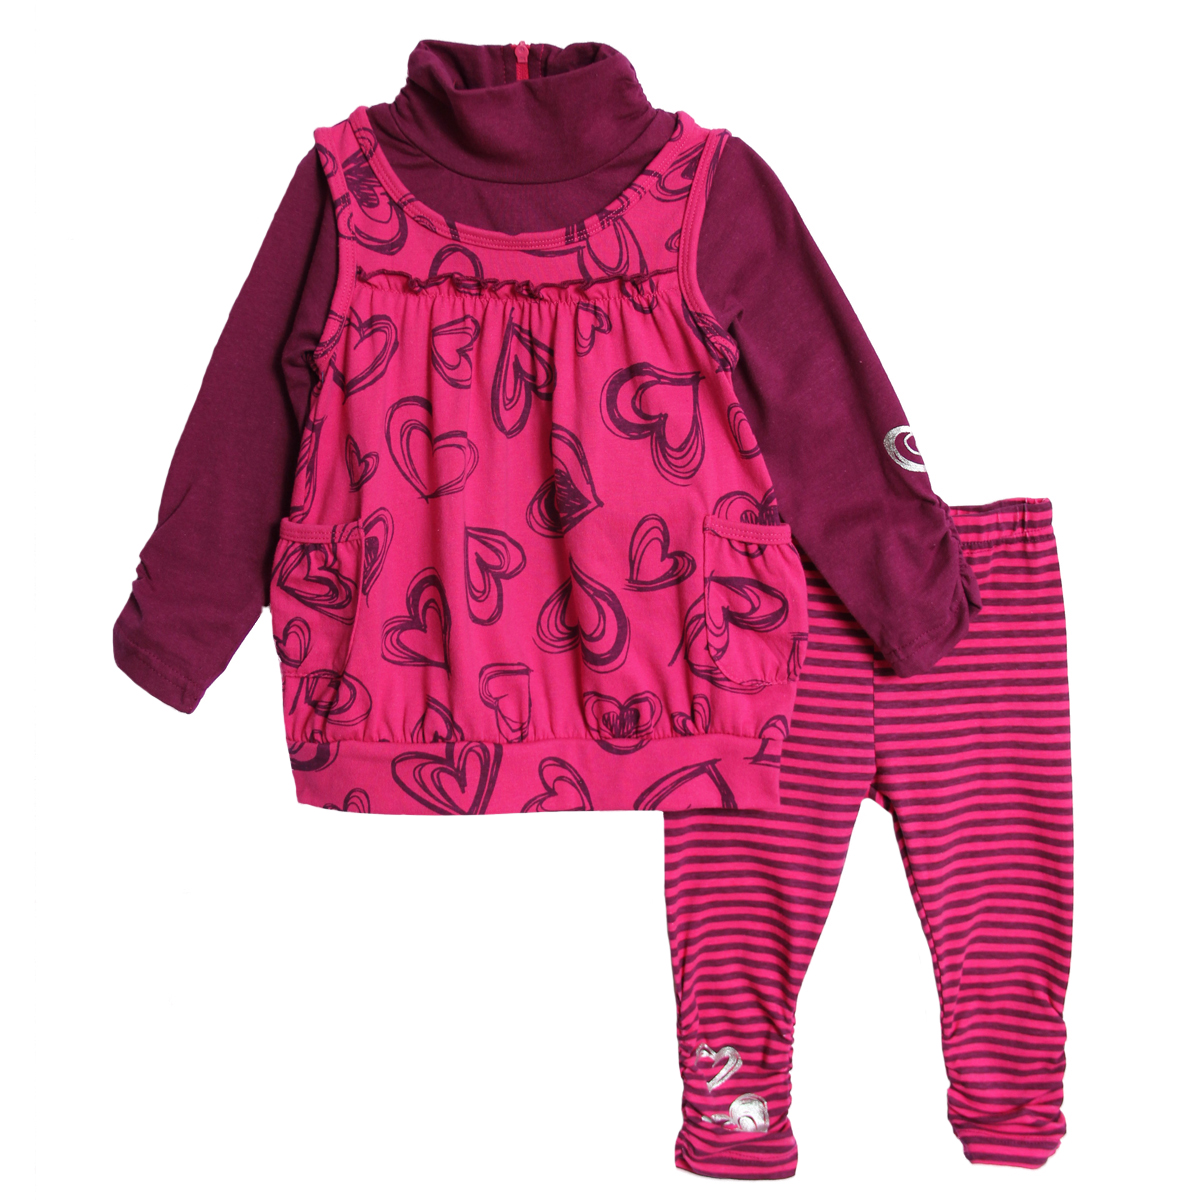 B.T. Kids Infant Baby Girls 2 Piece Pink Purple Turtleneck Tunic Top Leggings Set at Sears.com